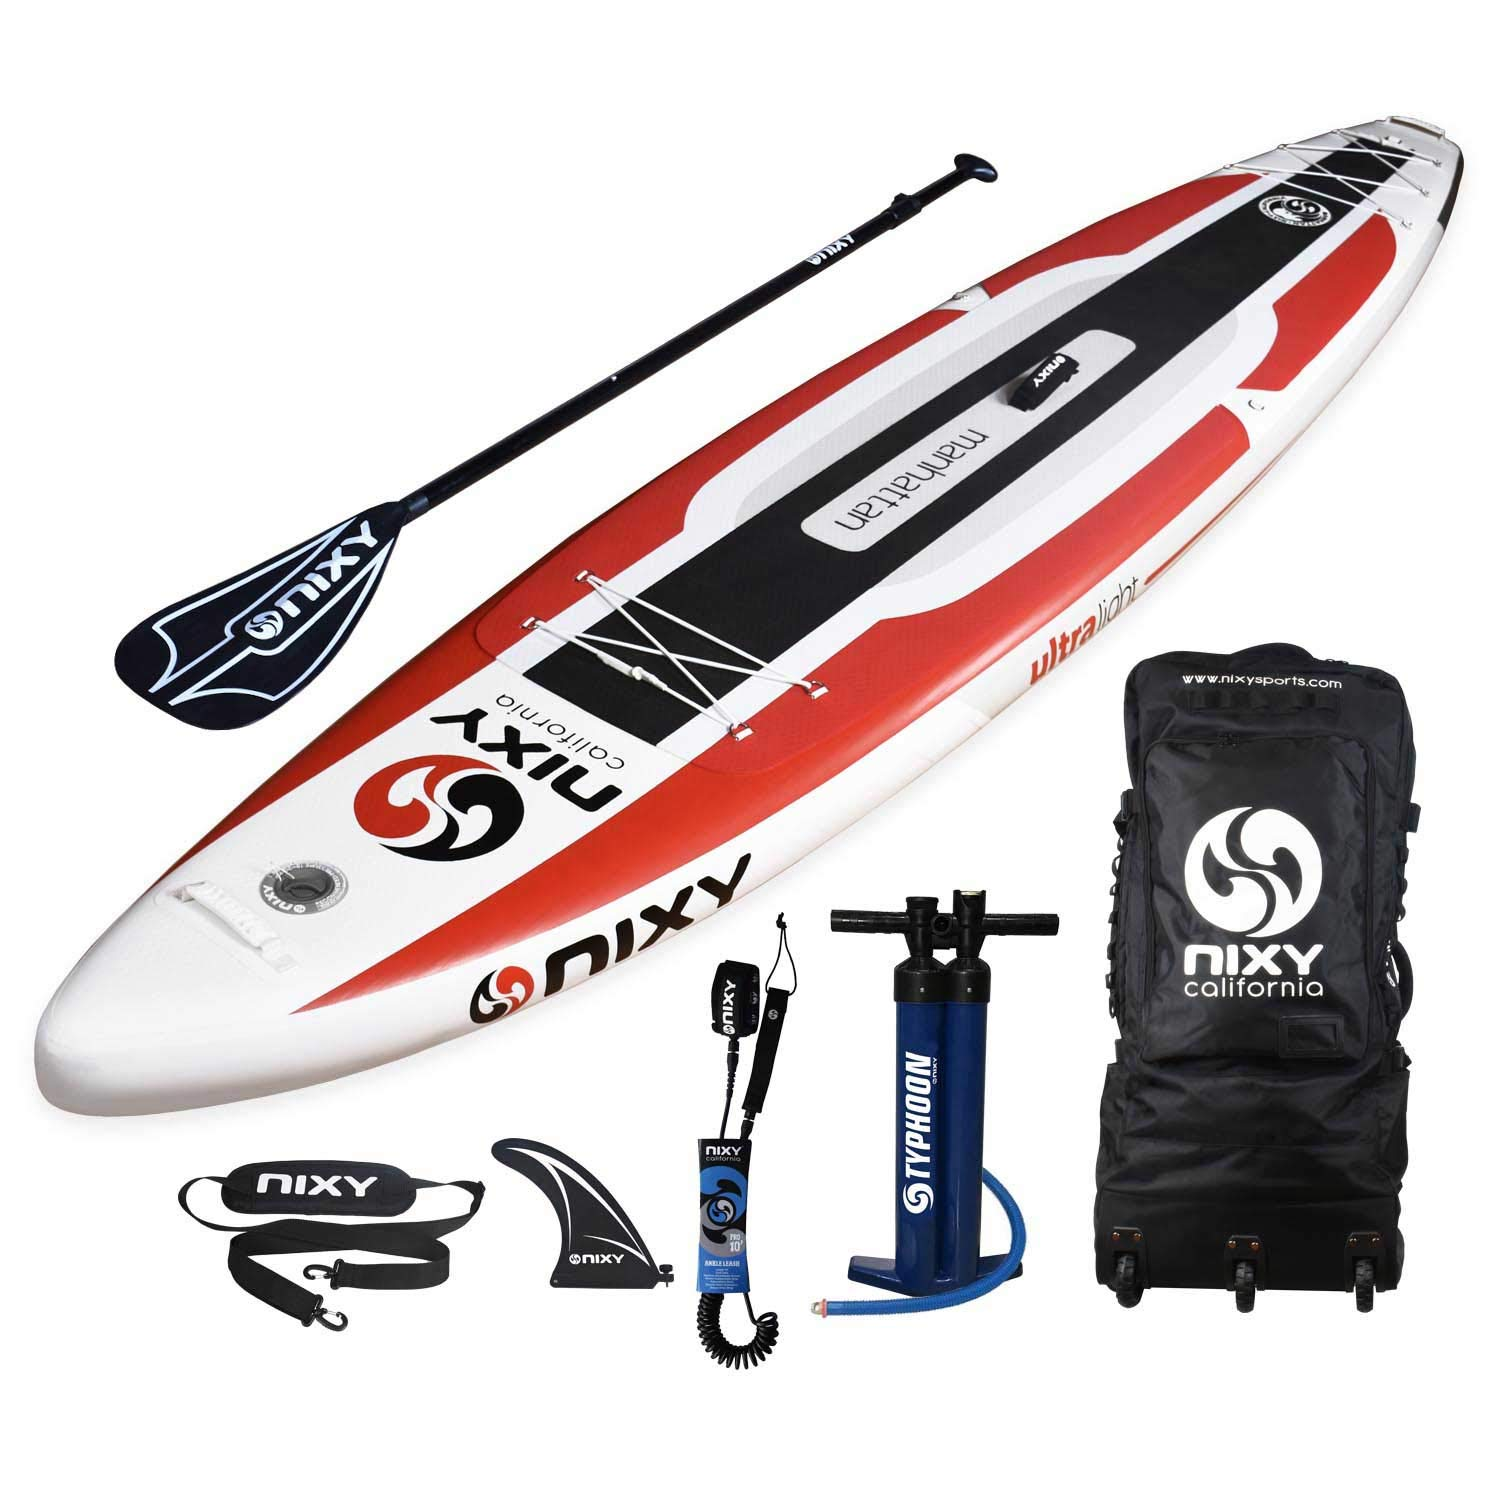 NIXY Touring Hinchable Stand Up Paddle Board Paquete. Ultra luz 12 ...